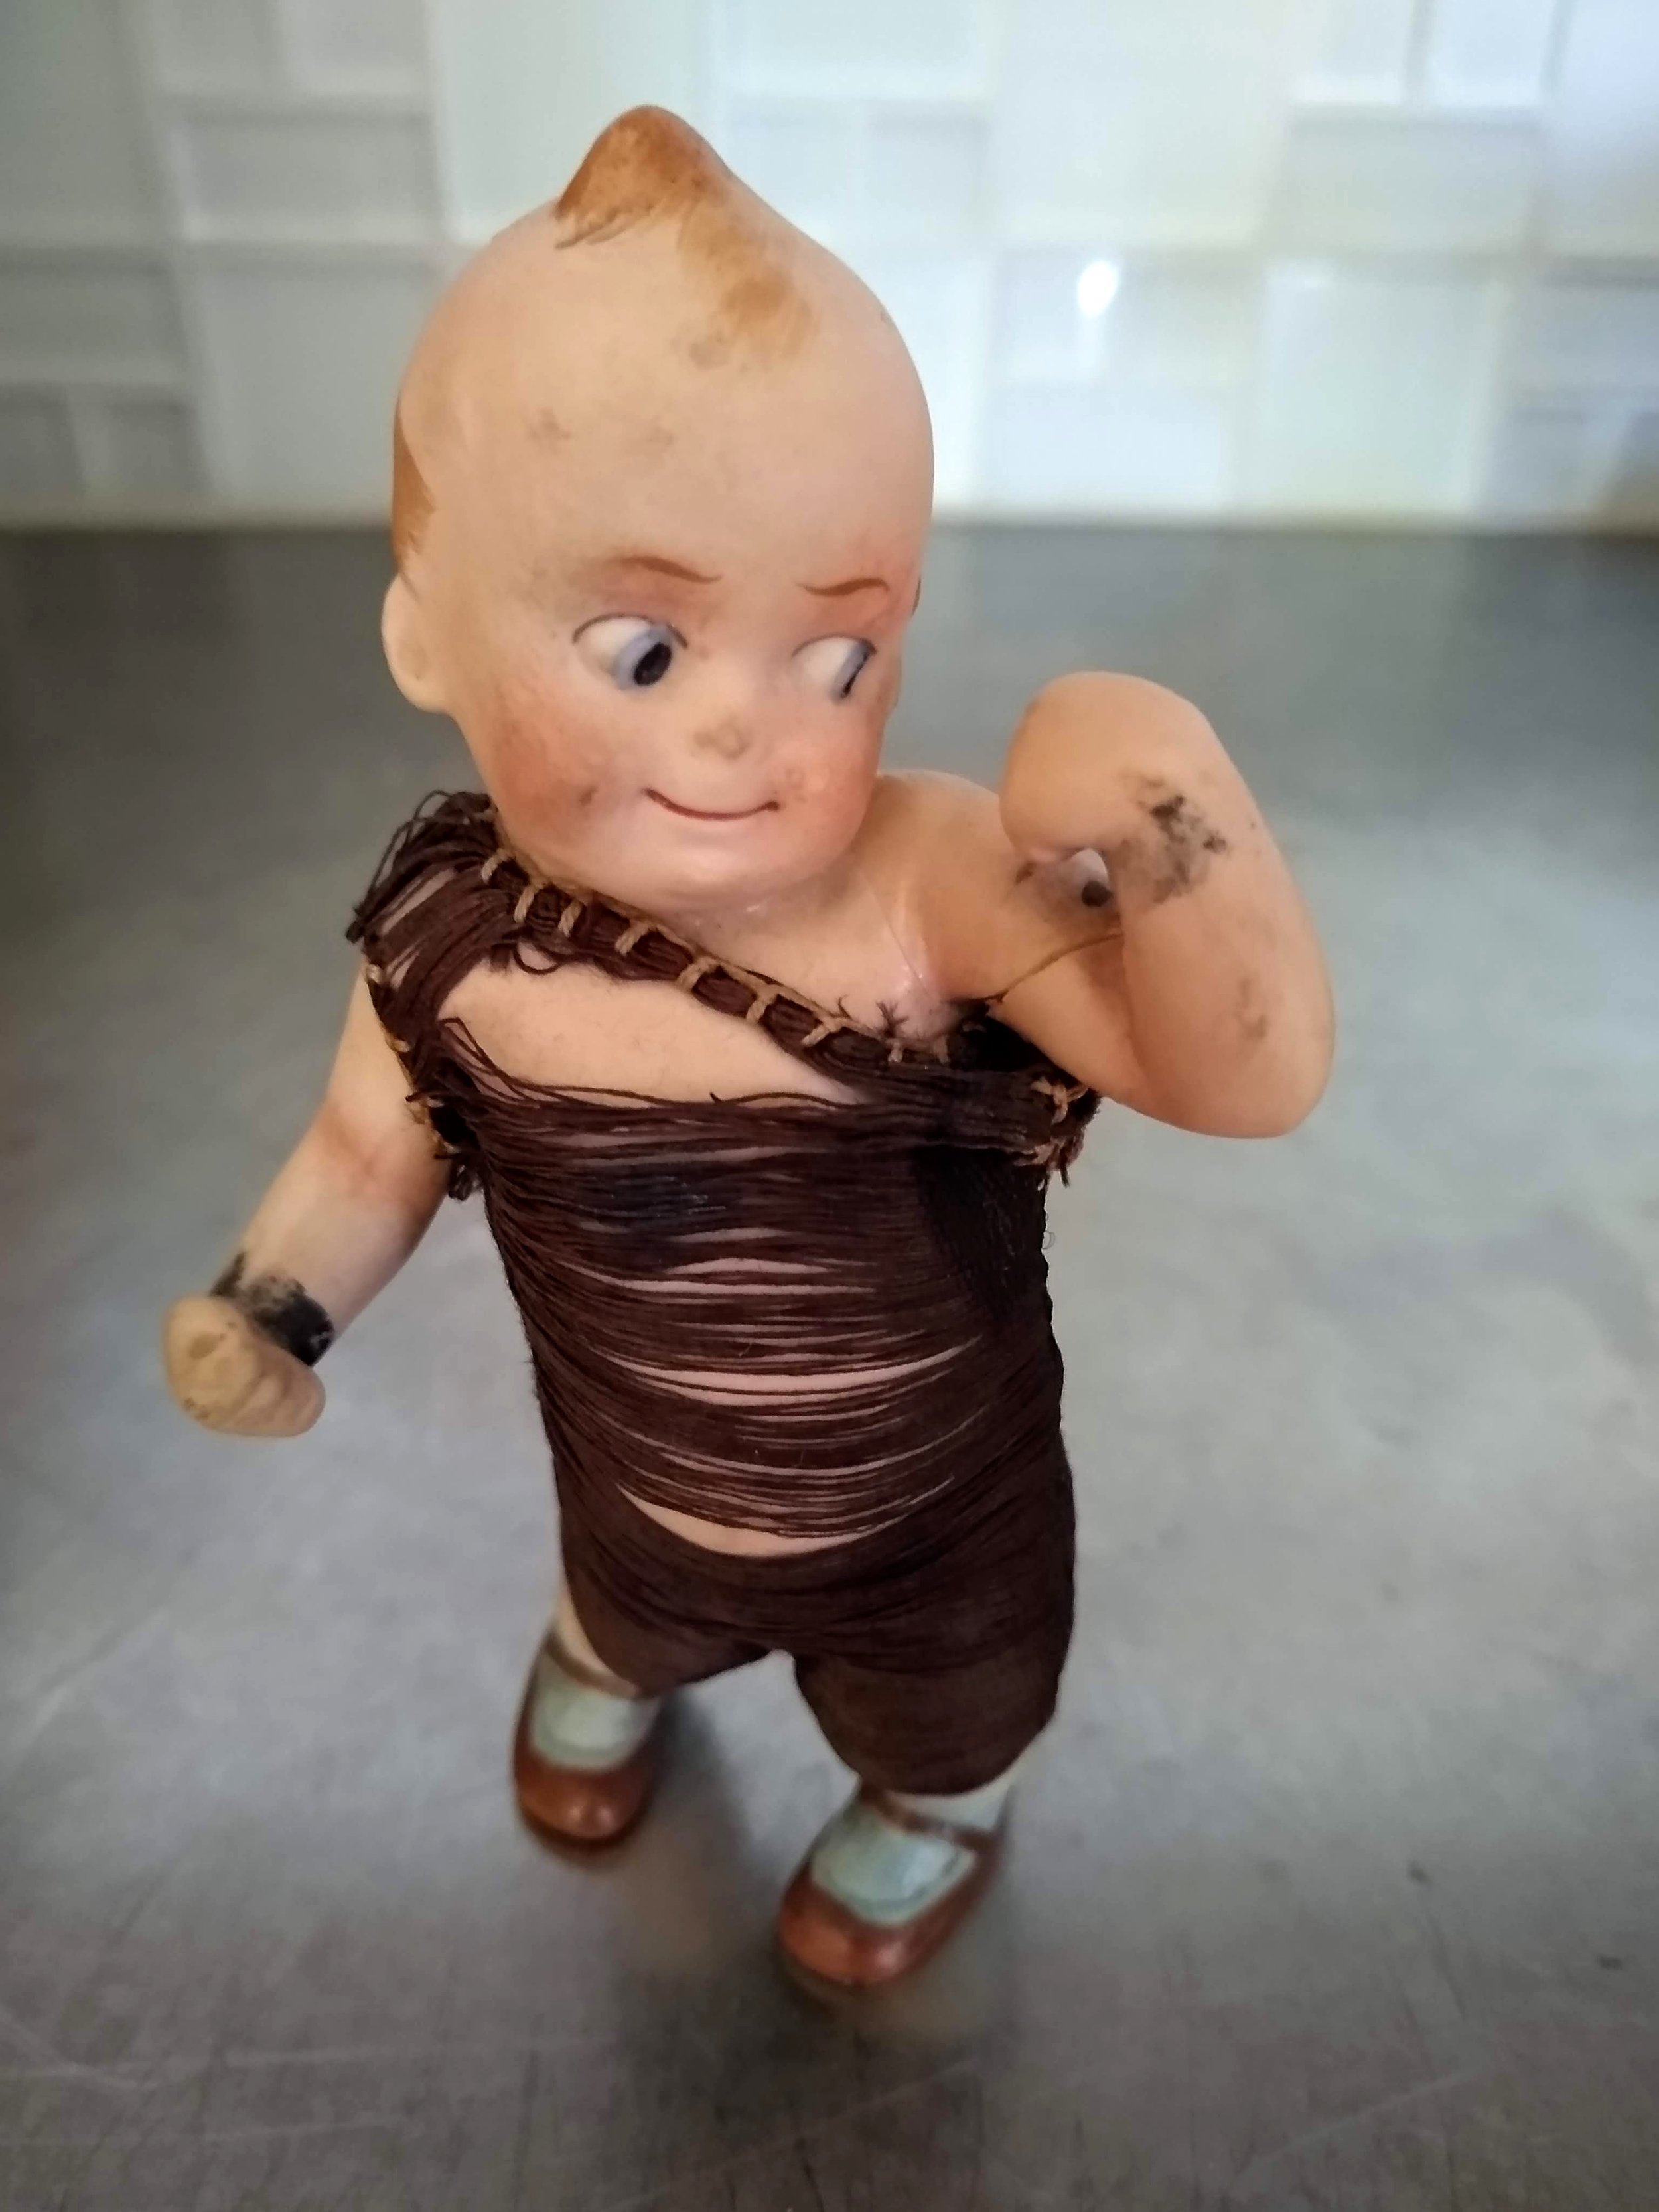 Kewpie dolls were based on a popular cartoon. The bisque figurines were first produced in Germany in 1912 and remained popular in the twenties. This poor little guy is battered and a bit broken, but it's a miracle he survived.